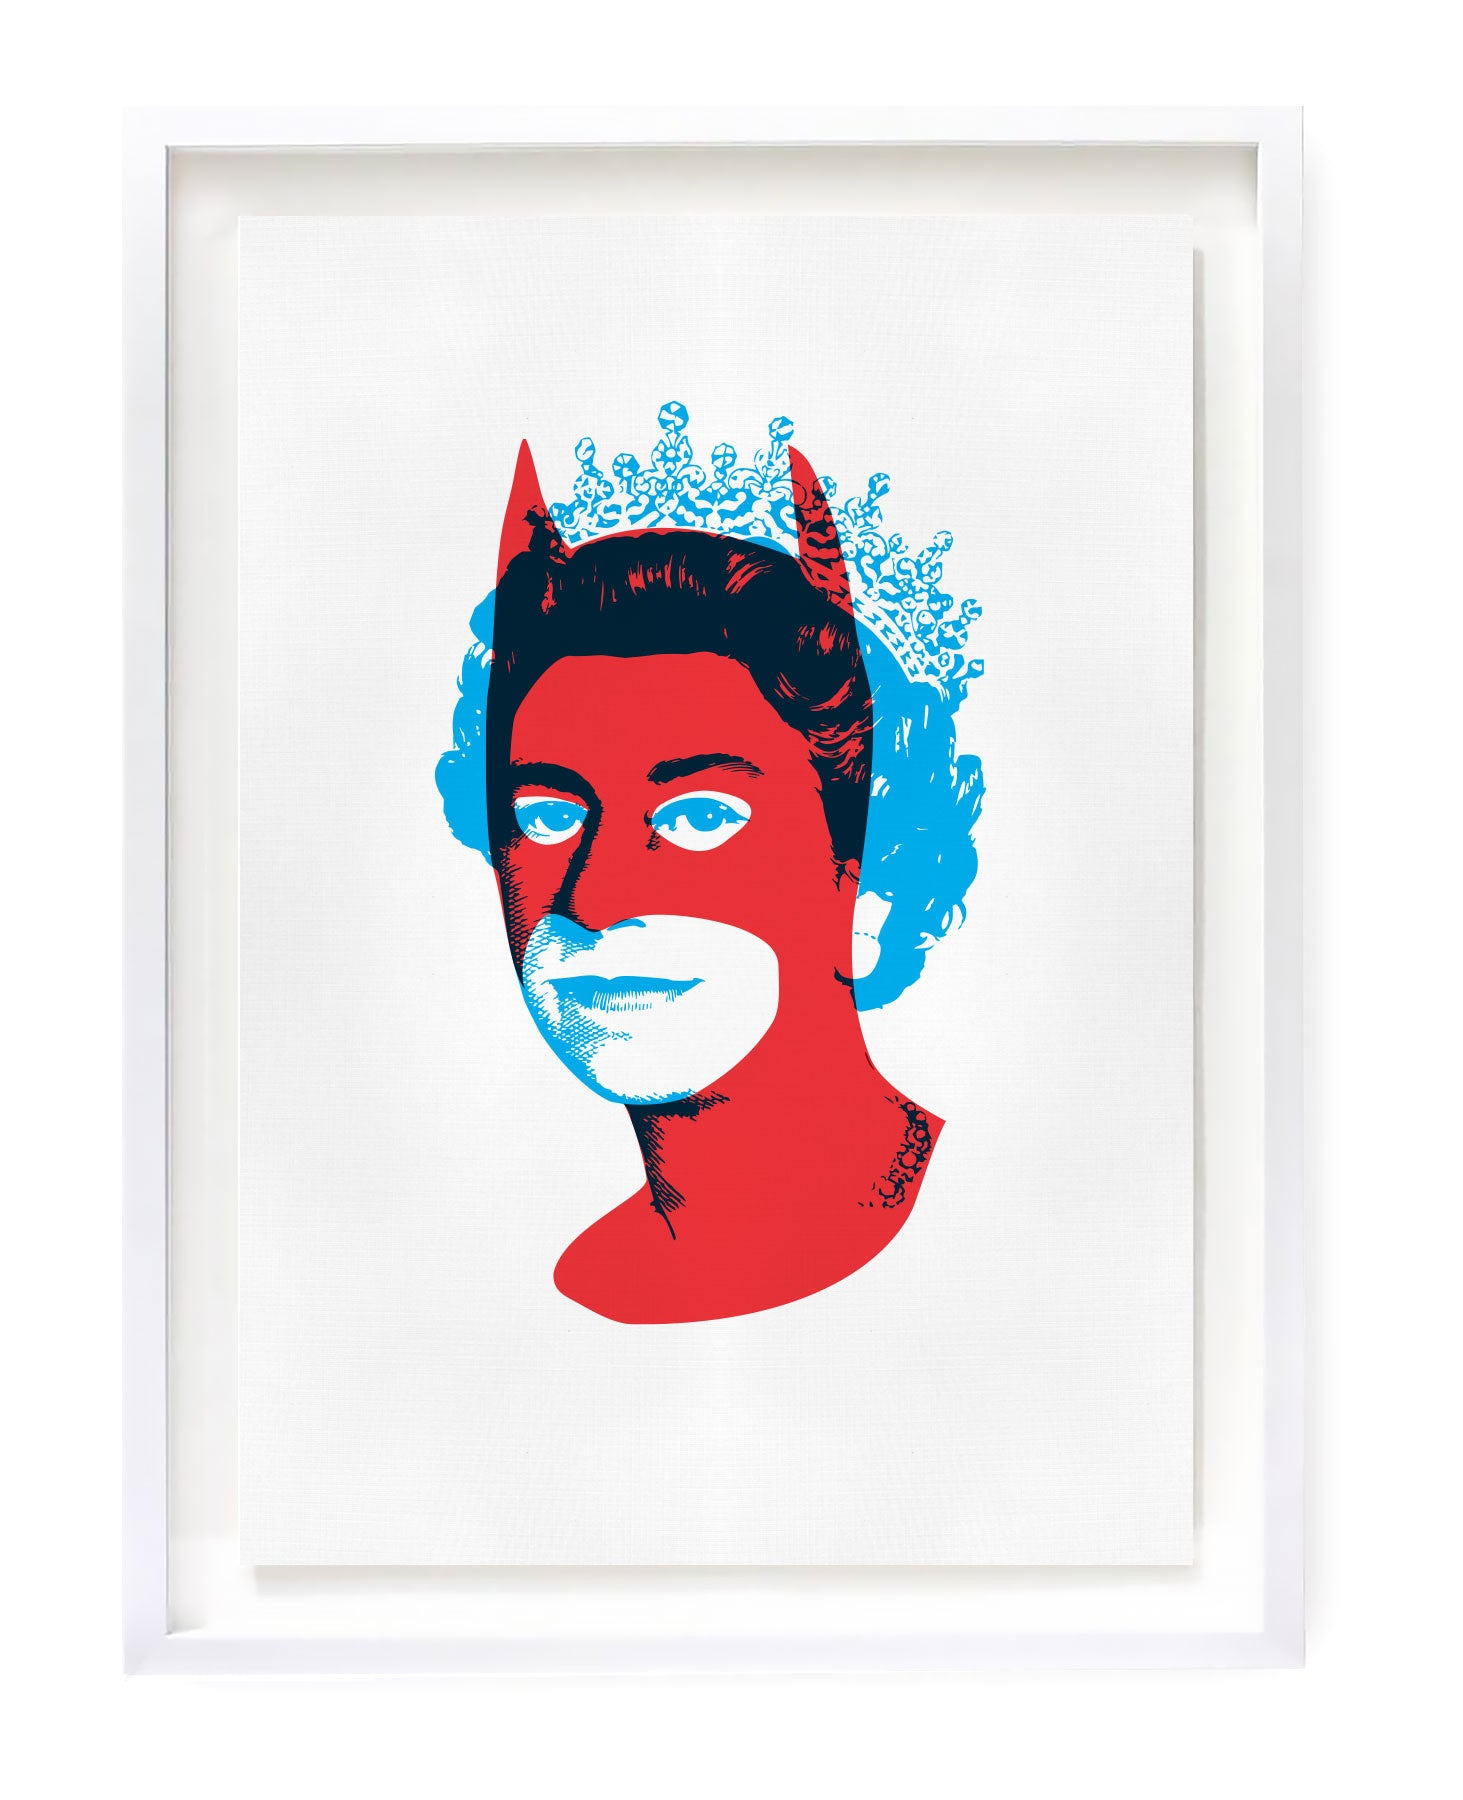 Red Batman with blue Queen Elizabeth limited edition art prints